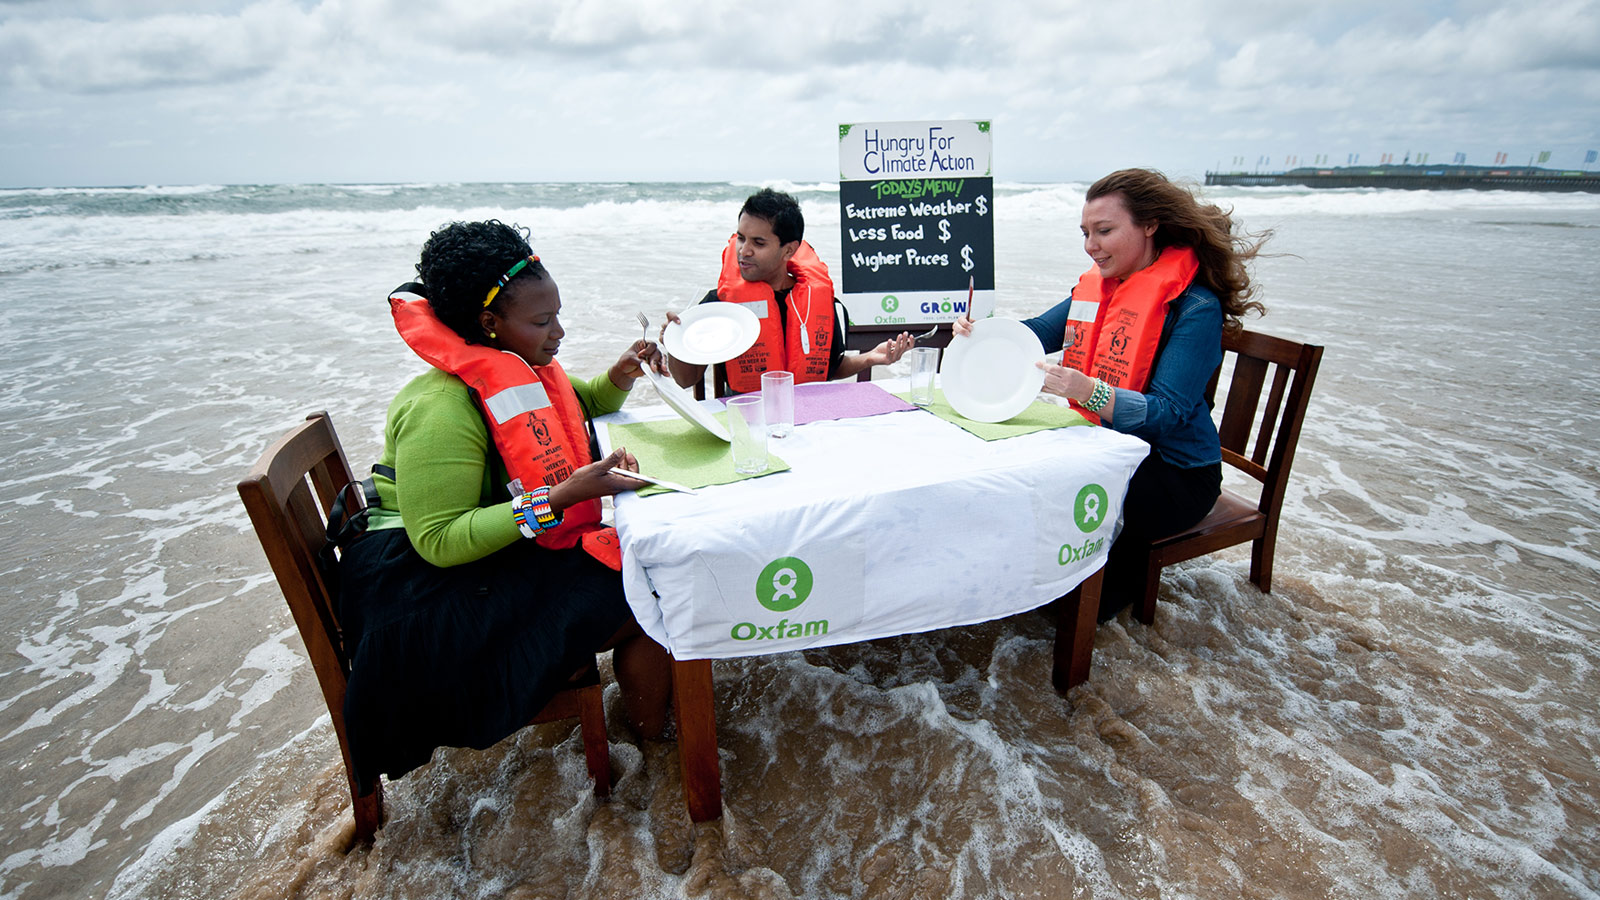 Climate activists at a table in the sea